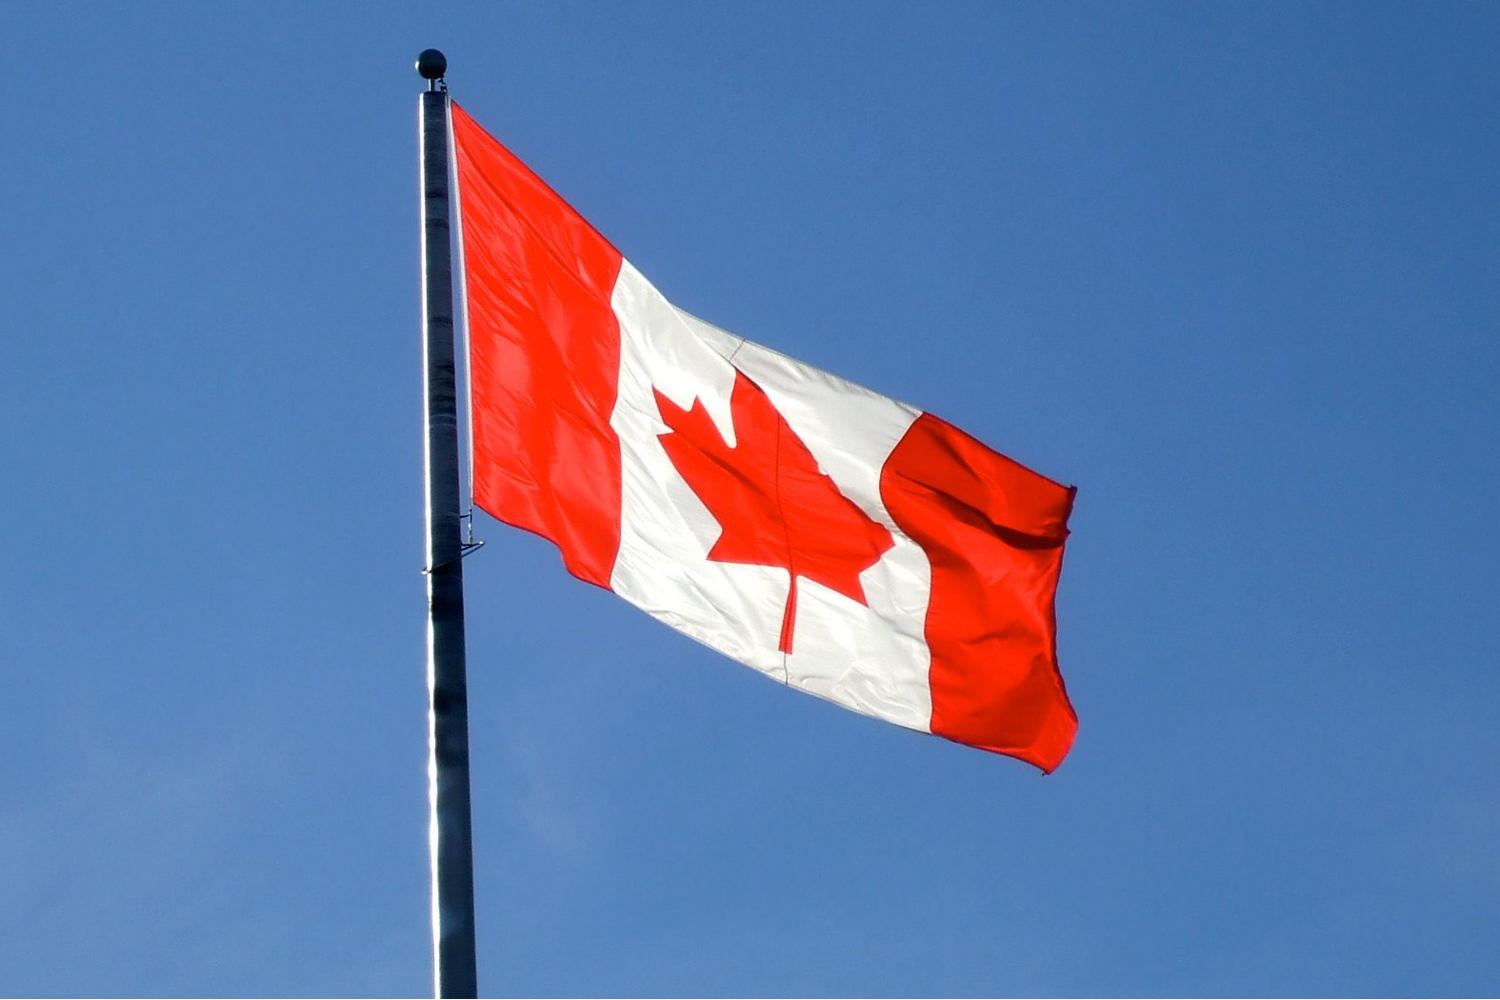 Single Event Sports Betting to Be Legalized in Canada